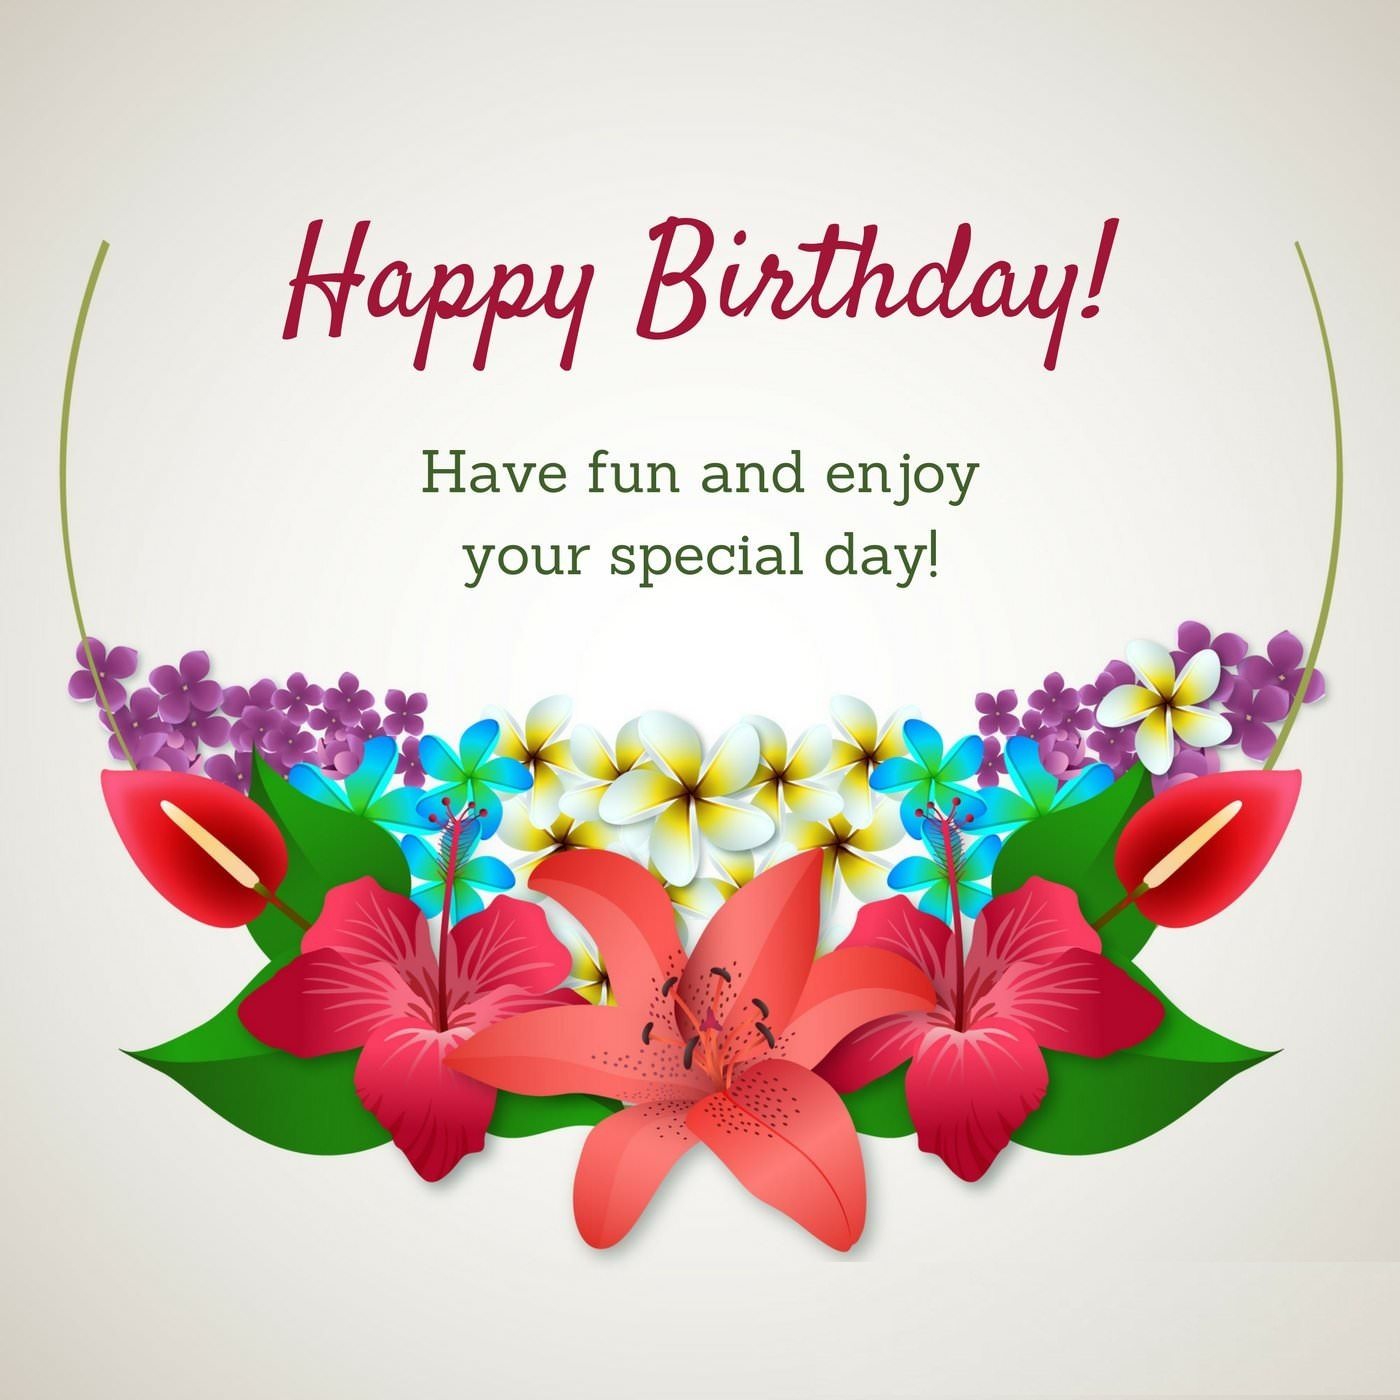 Free animated birthday cards - Wishes & Love